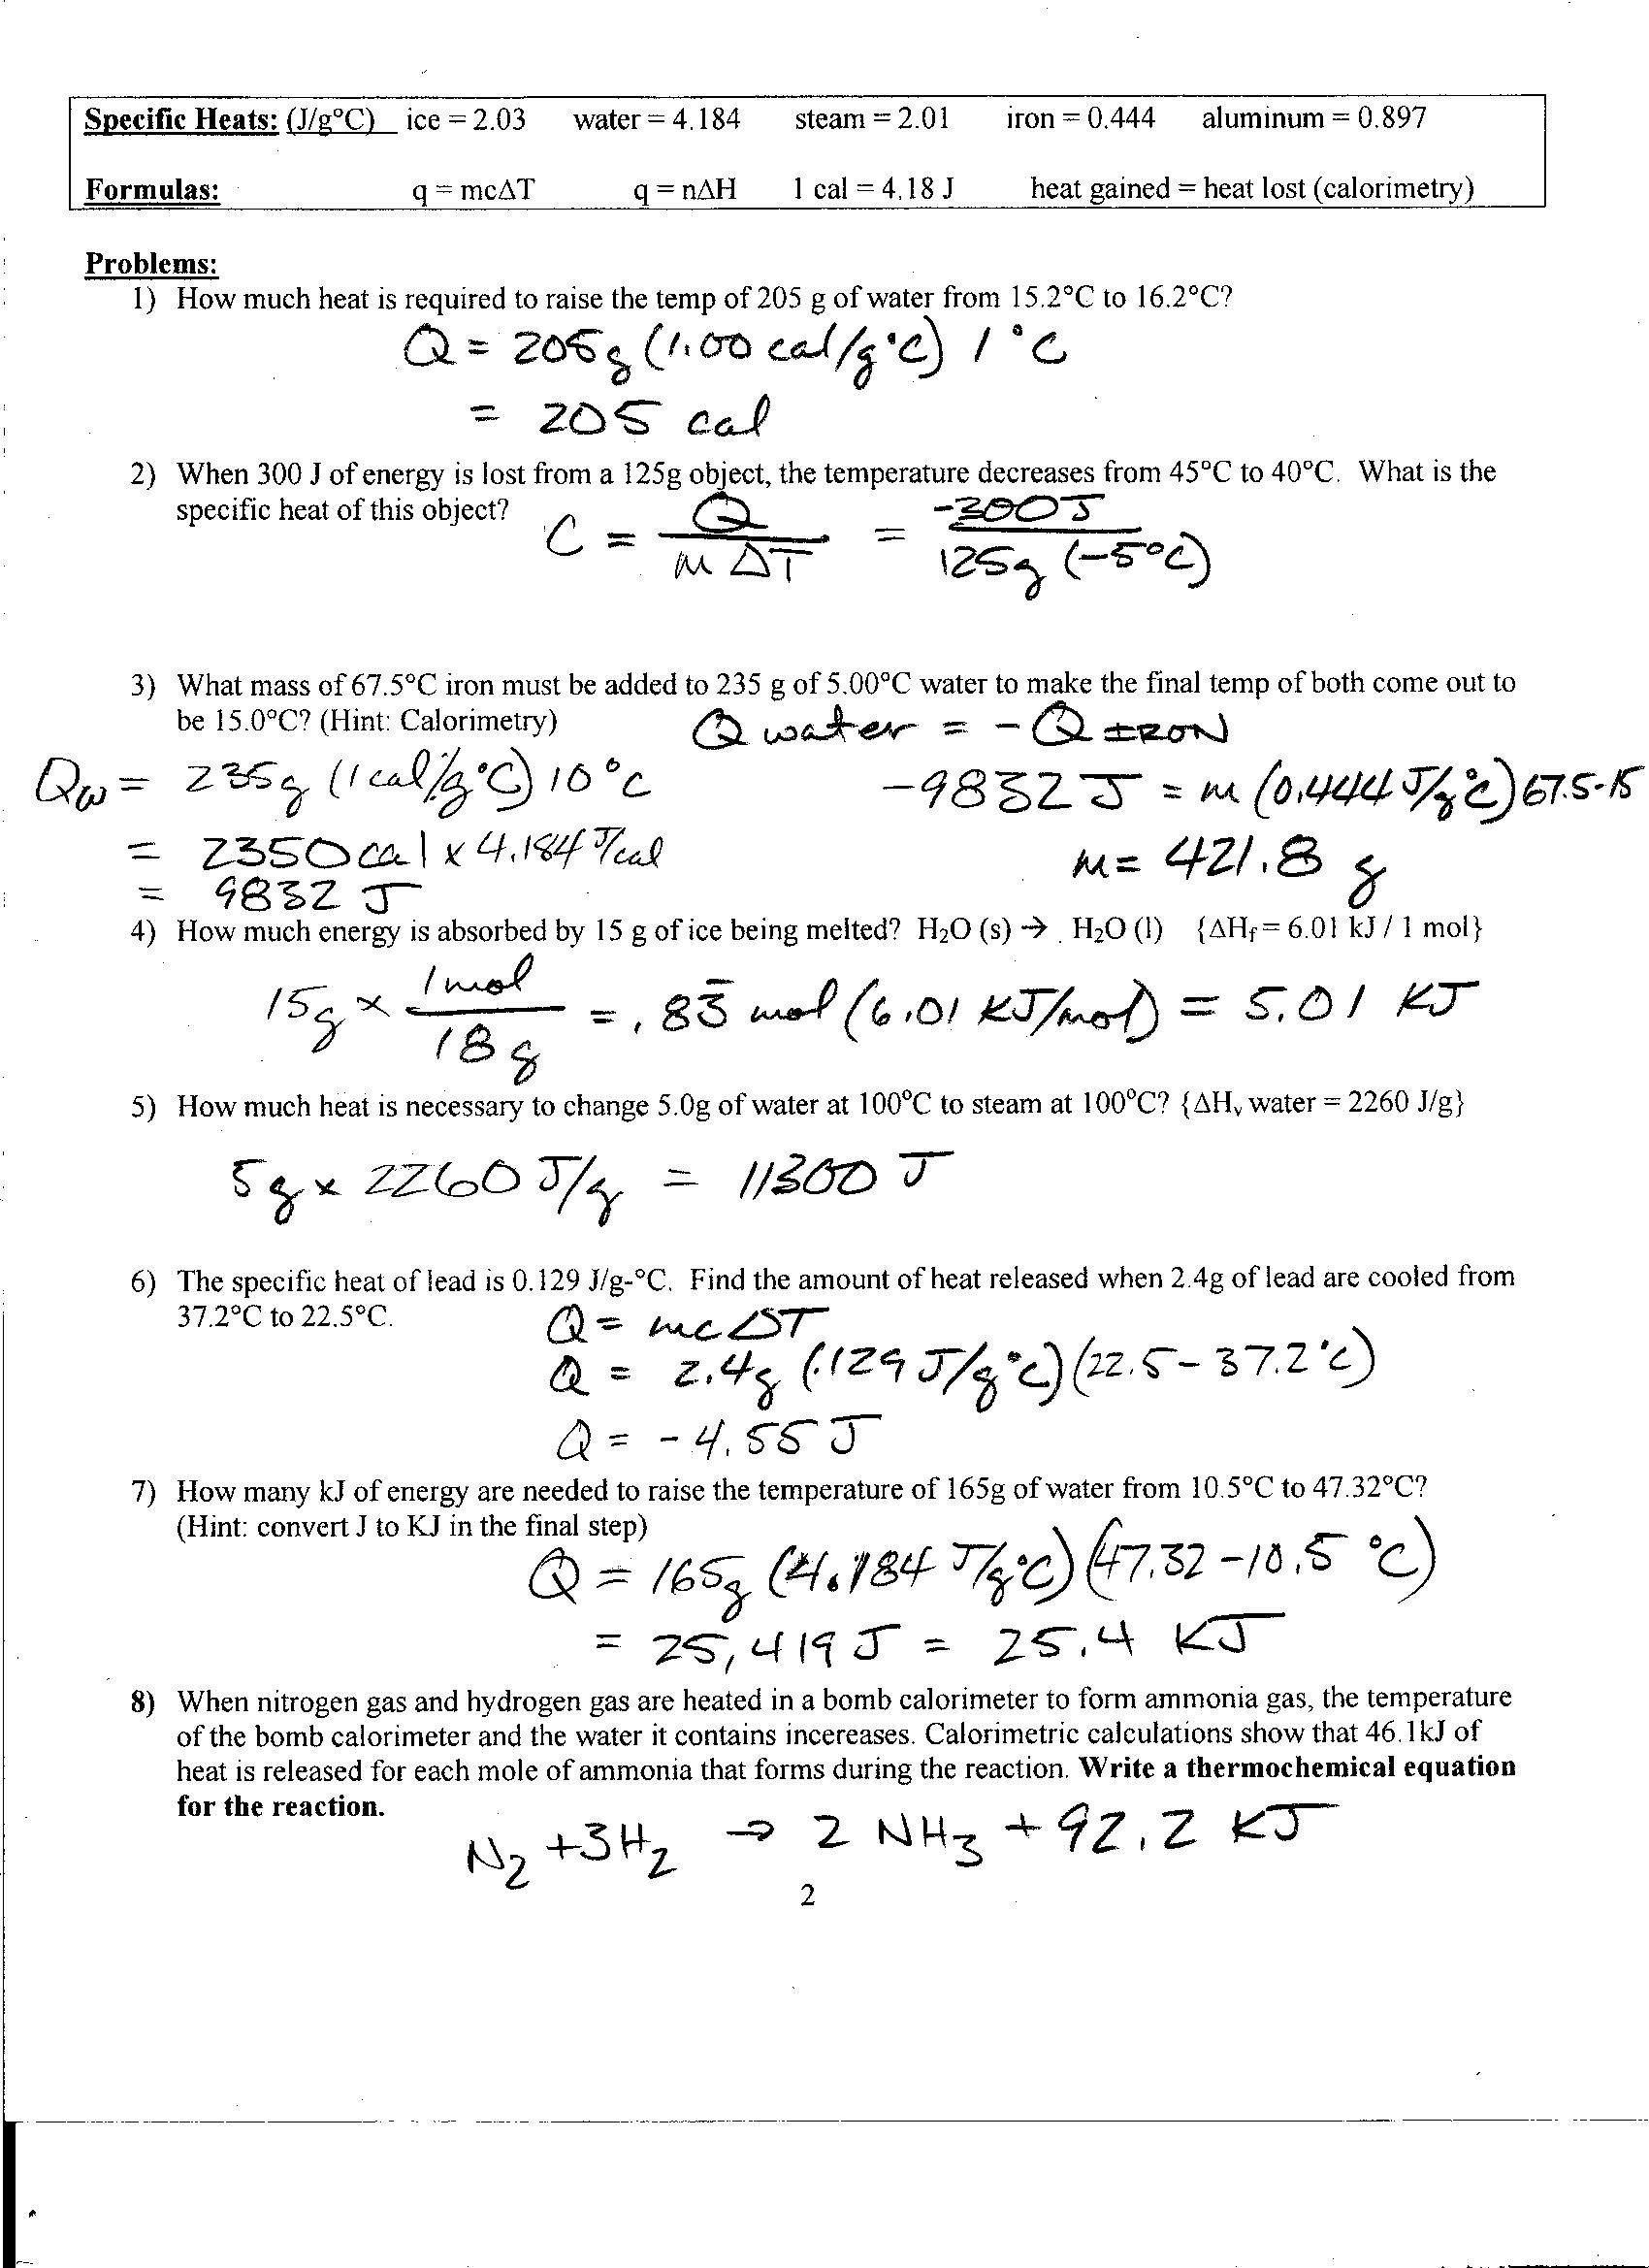 Foothill High School For Specific Heat Problems Worksheet Answers